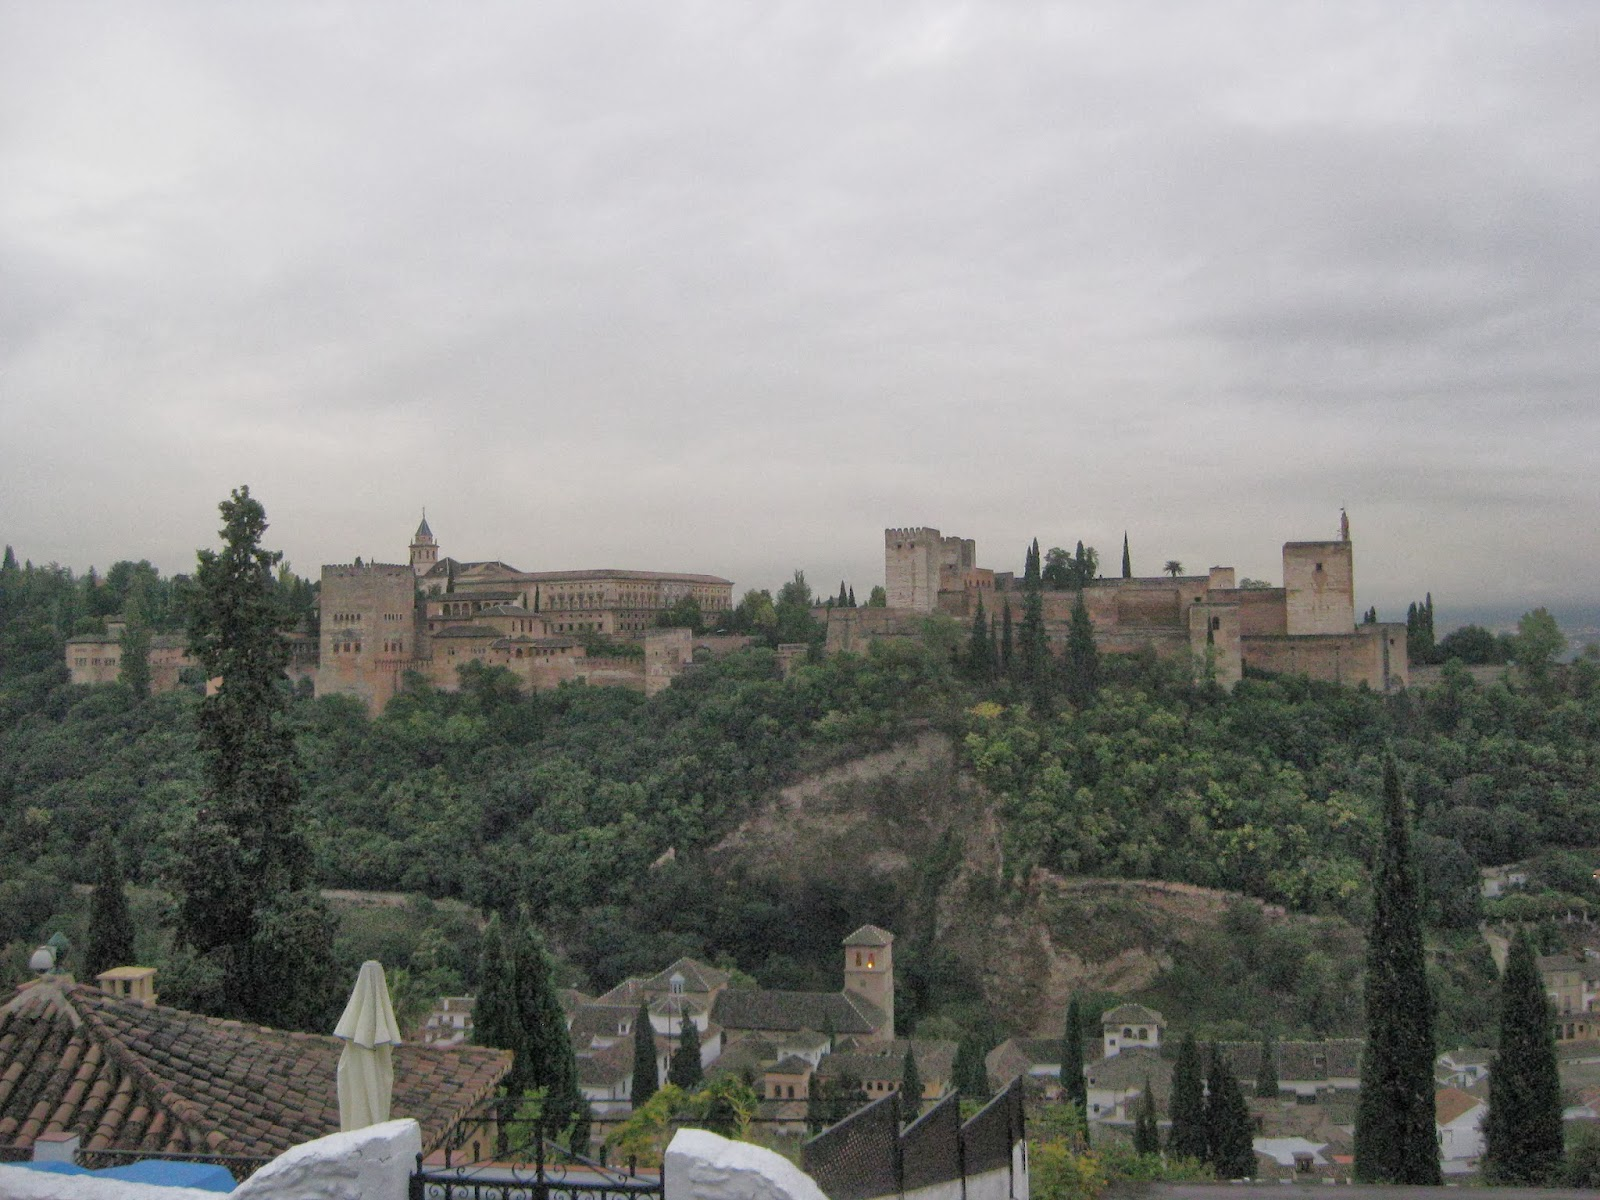 Granada - You get the best views of The Alhambra from Mirador de San Nicolas